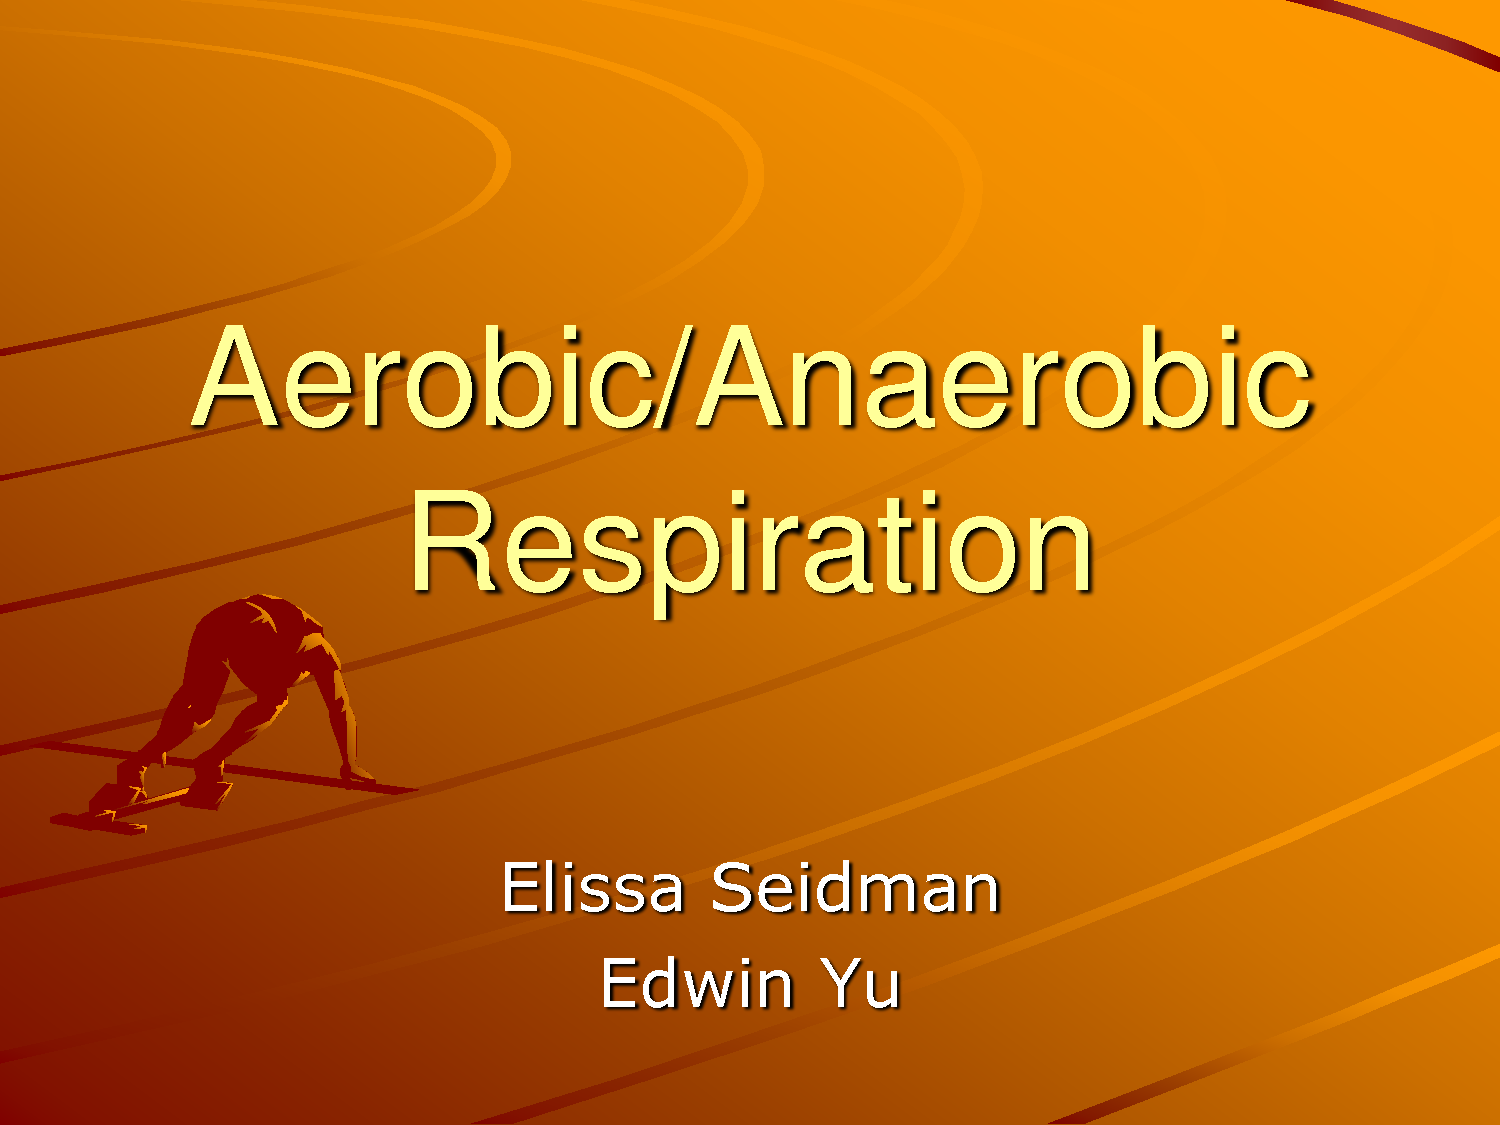 essays anaerobic training